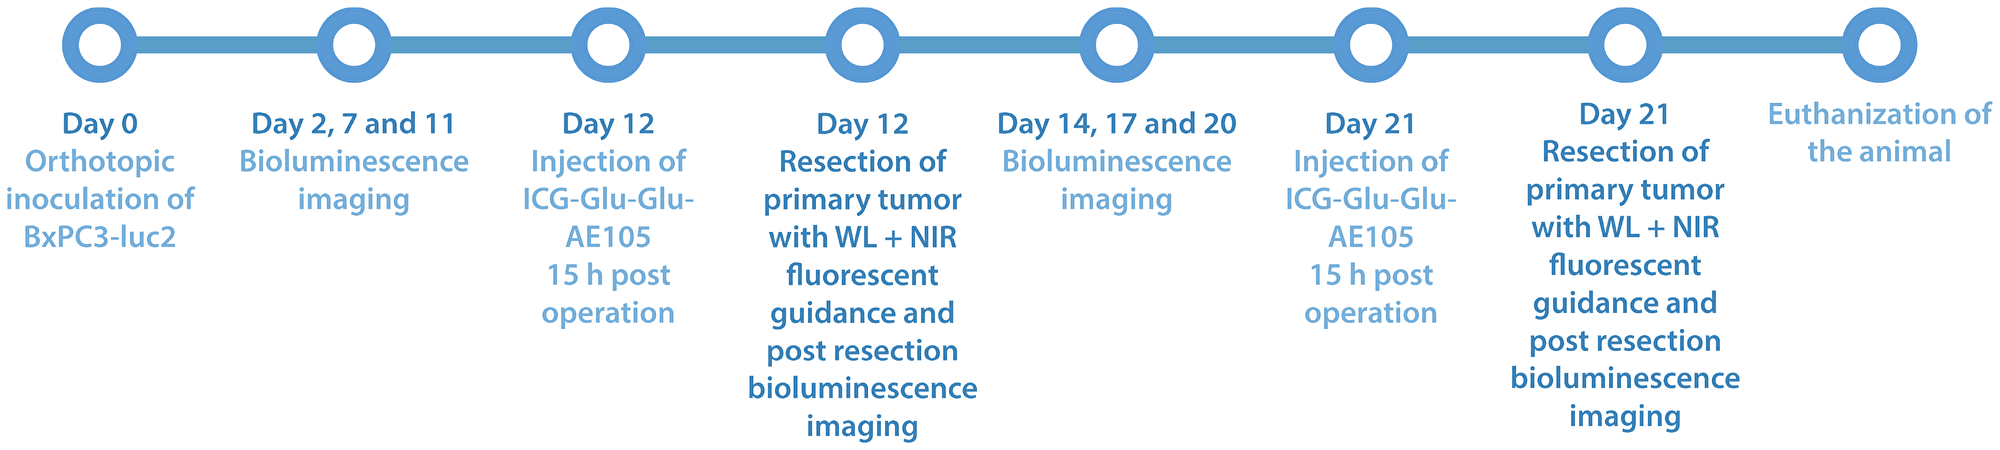 Study timeline over part II of the study, where white light surgery is compared with fluorescent guided surgery in 5 mice with ICG-Glu-Glu-AE105 was used as optical probe 15 h post iv. injection.